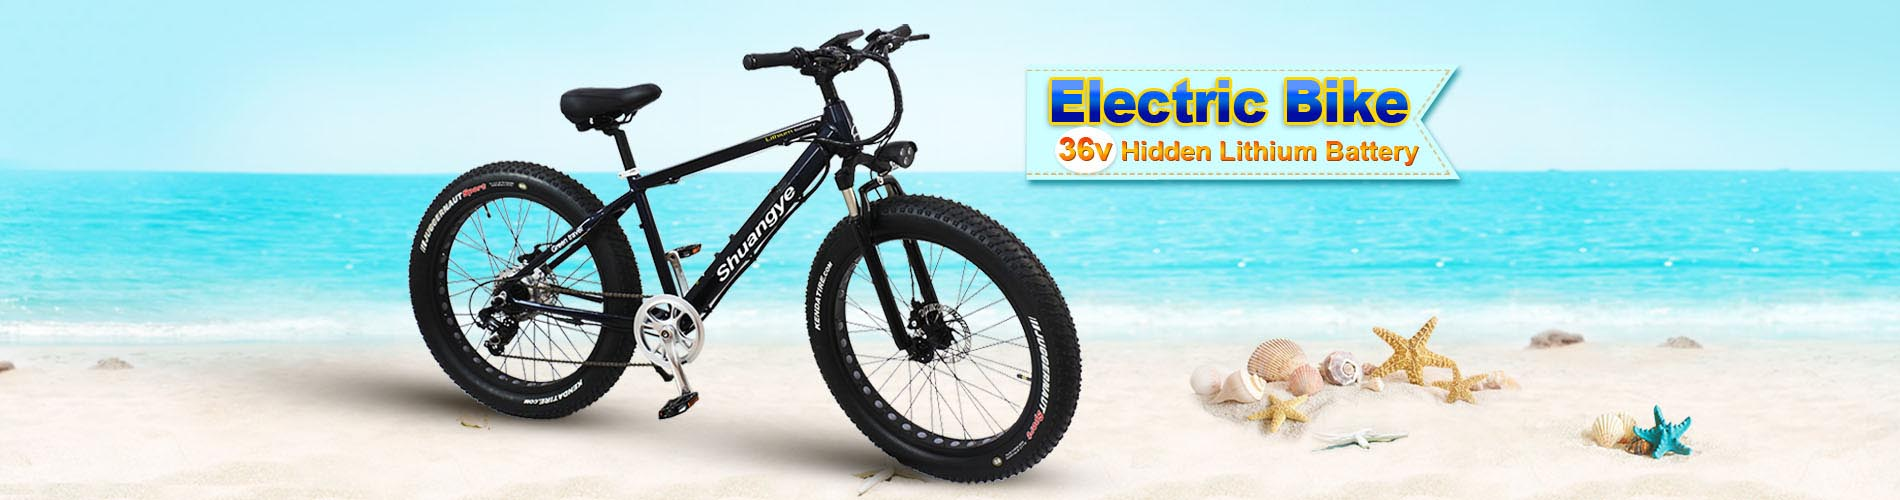 City electric bicycles 36V lithium battery